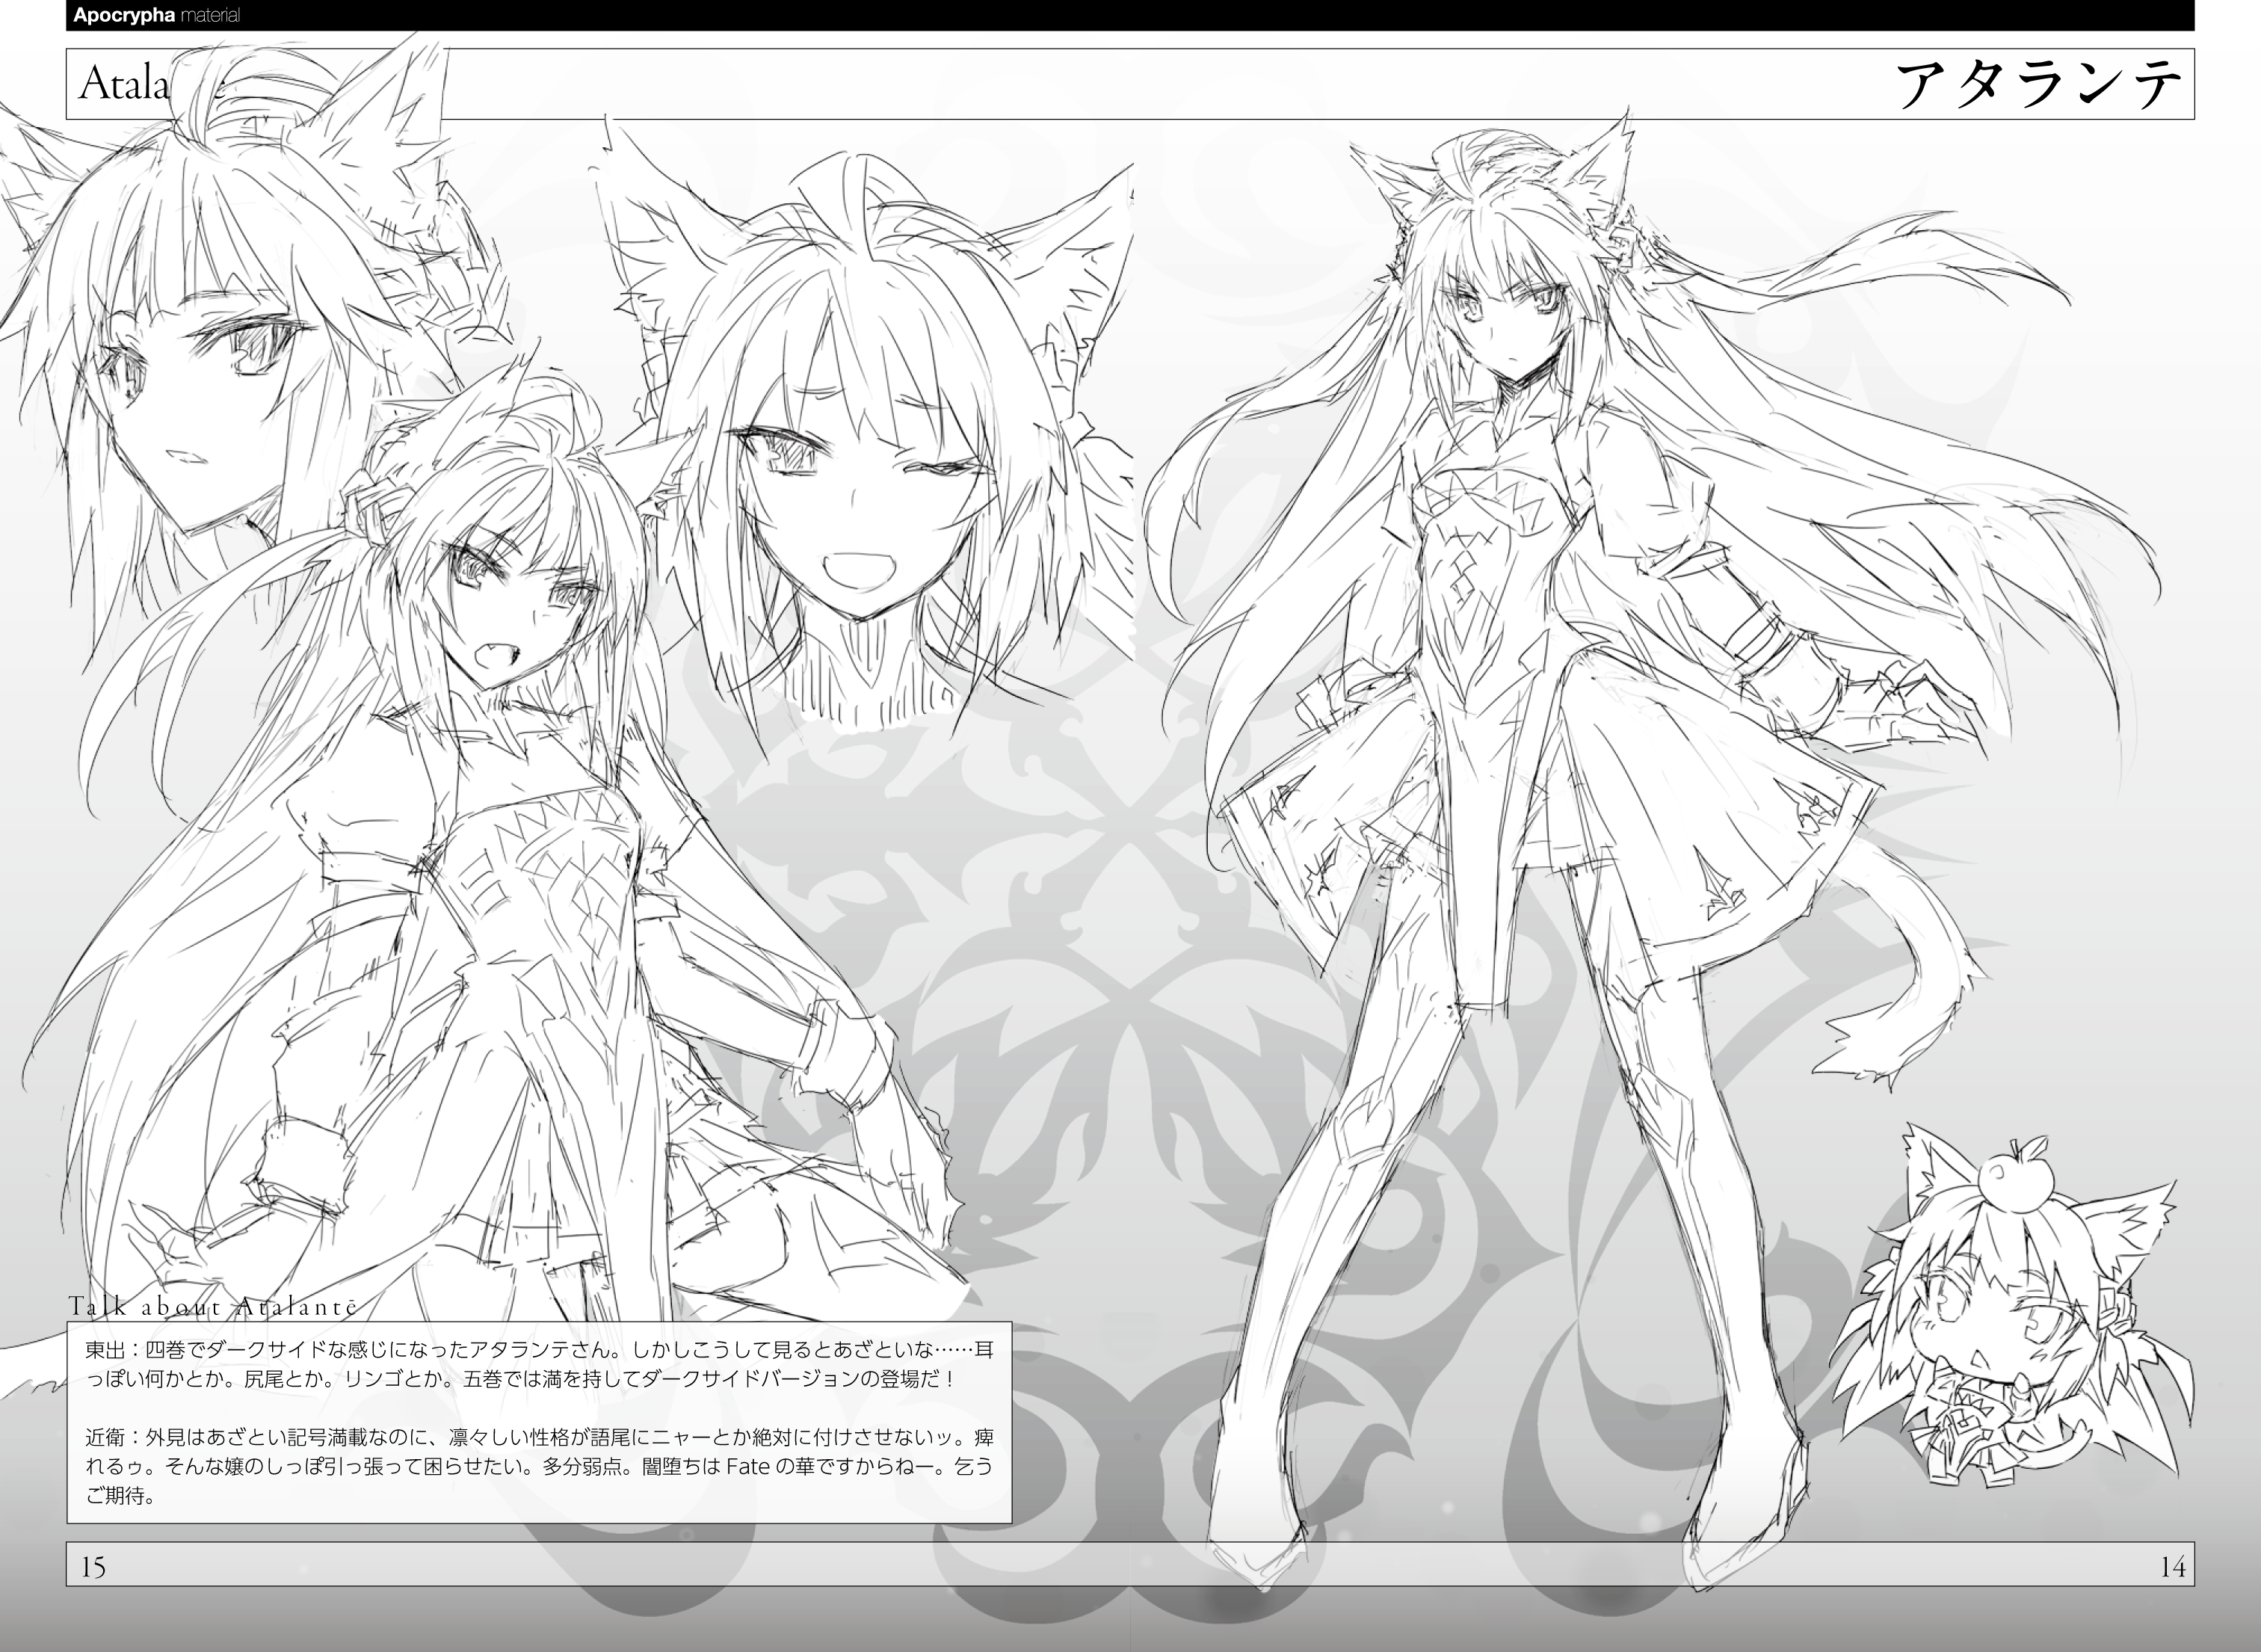 Fate Apocrypha Artbook Is Free to Help Promote TYPE-MOON's Comiket 87 Planned Releases haruhichan.com Character design 3